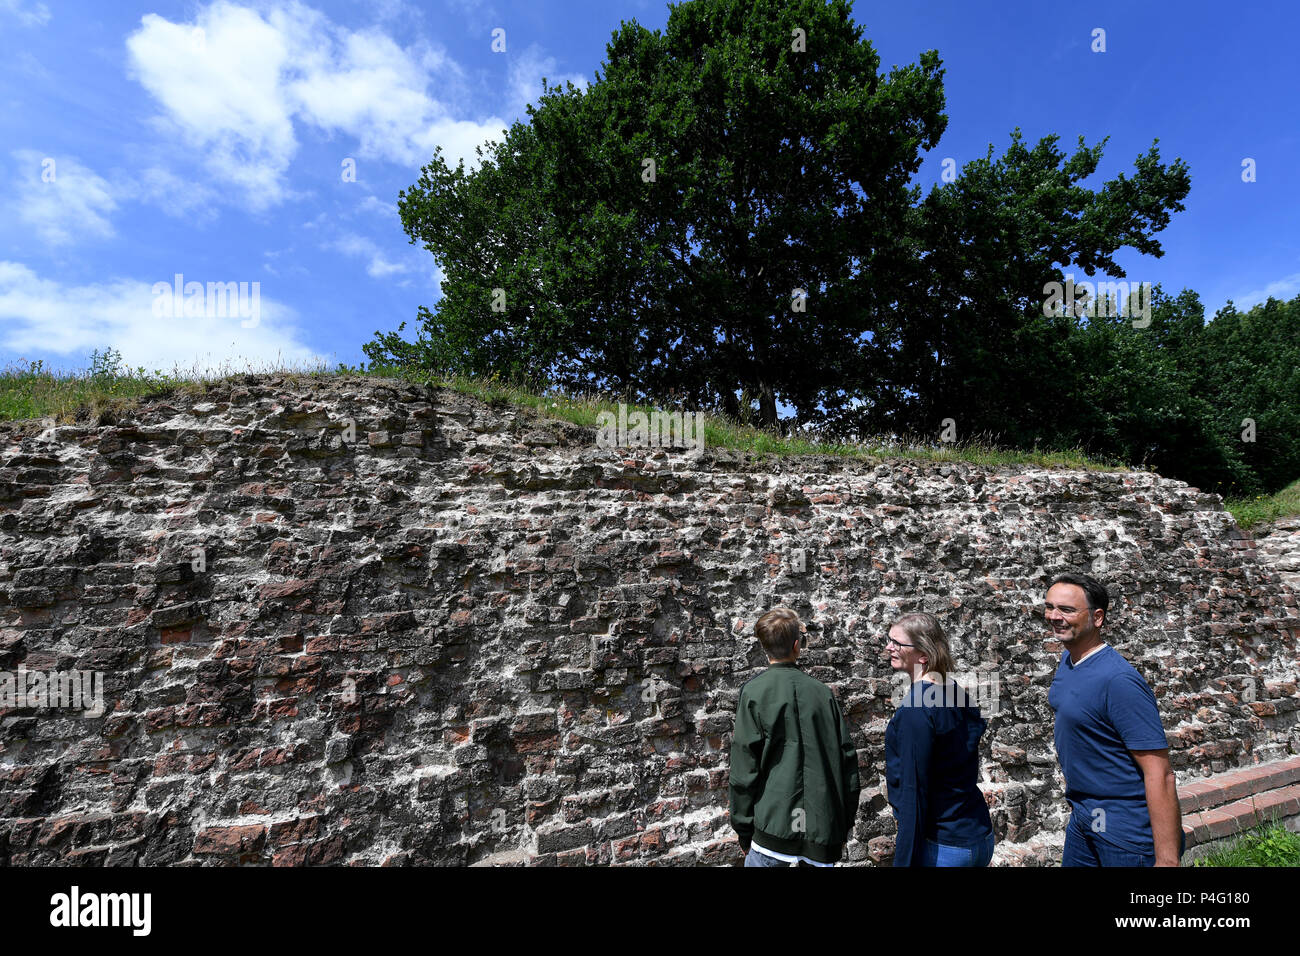 Danewerk, Germany. 20th June, 2018. Visitors standing on the Waldemar wall at the viking site Danevirke. It was originally made of mounds, walls, graves and a flood barrier in Schlei. The UNESCO world heritage committee will decide on the admission of new monuments to its list at a session between the 24 June and 3 July. The Viking sites Hedeby and Danevirke are Germany's applicants. Credit: Carsten Rehder/dpa/Alamy Live News - Stock Image